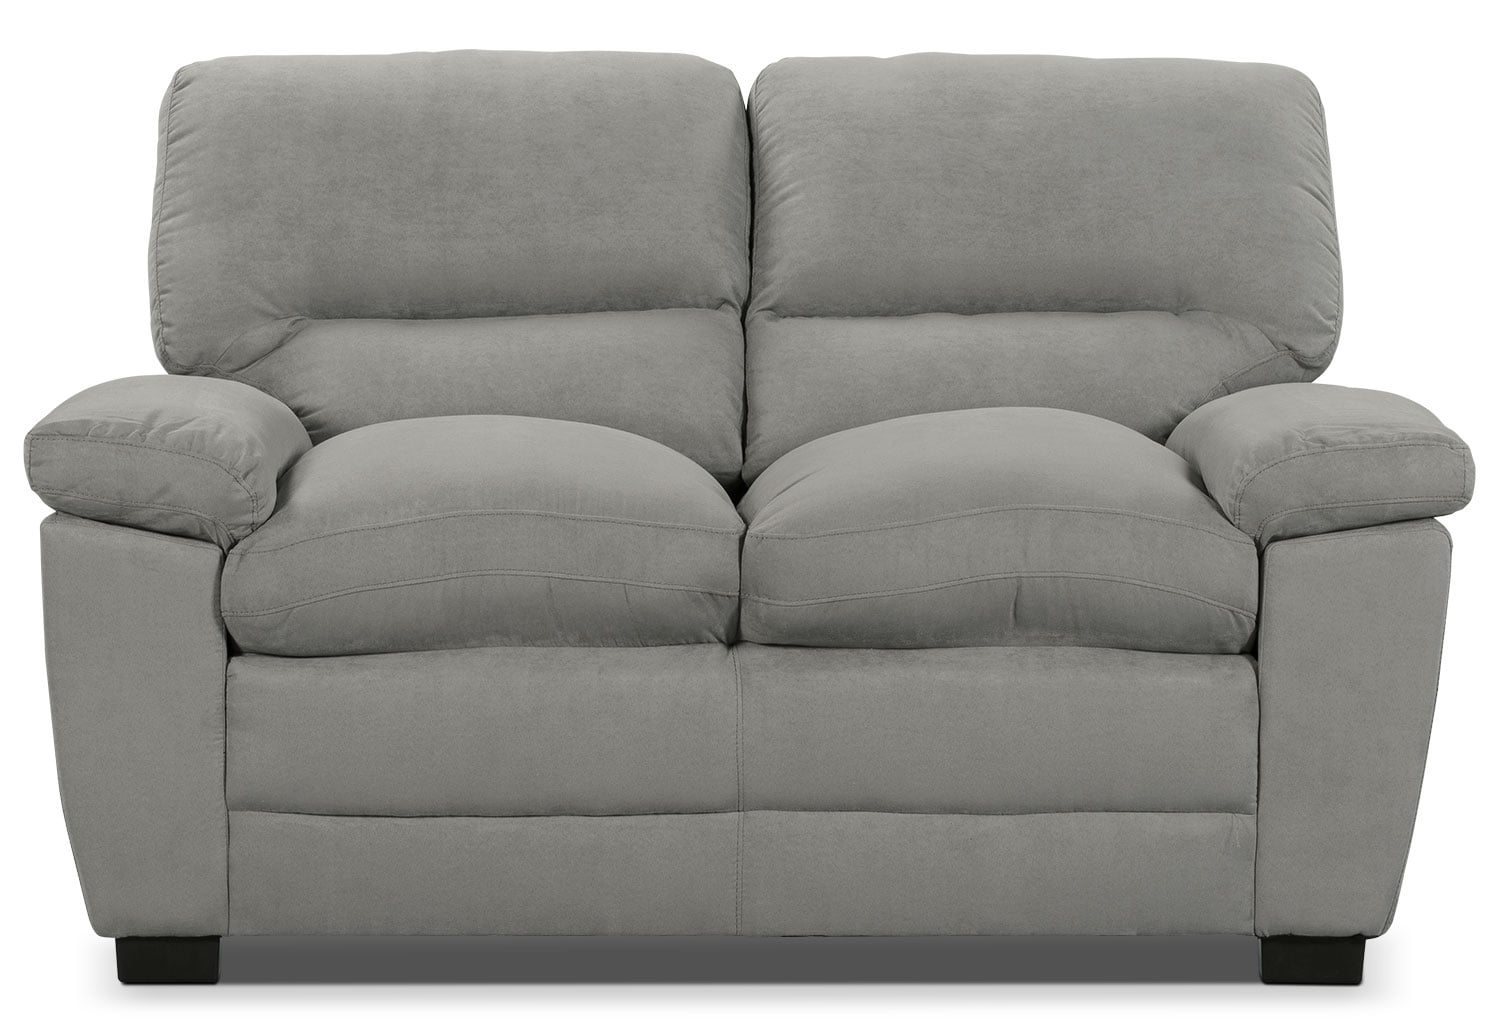 Peyton microsuede loveseat grey the brick for Microsuede living room furniture